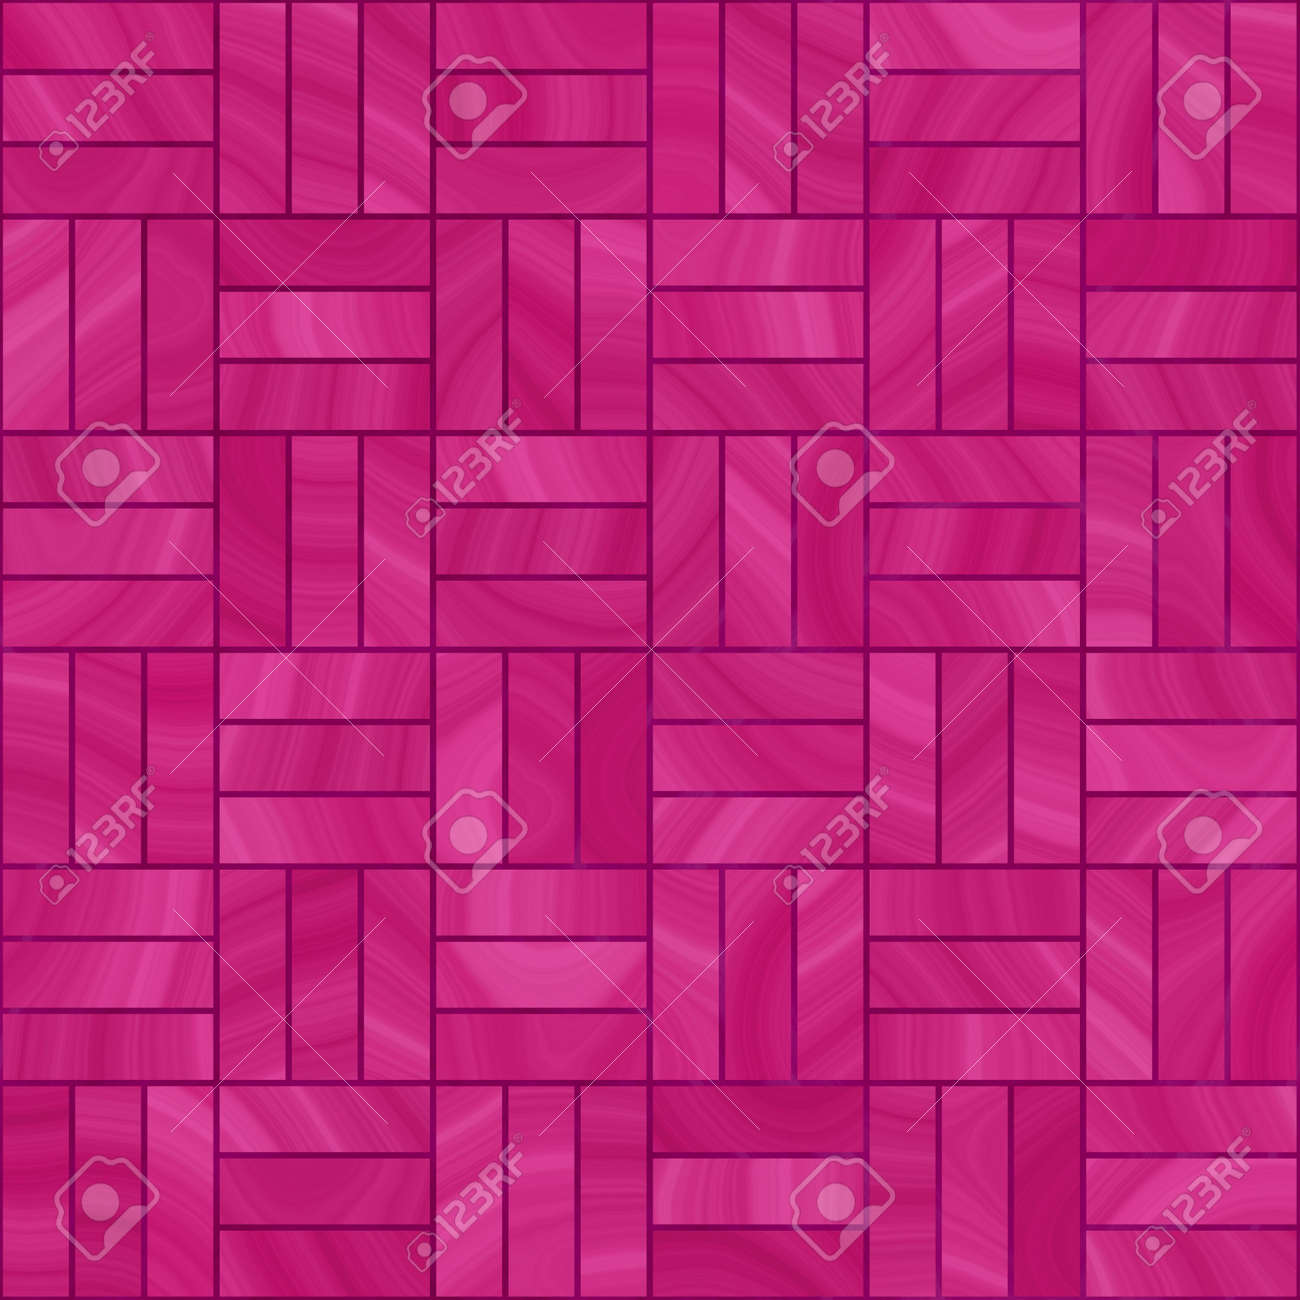 Pink floor tiles will tile seamlessly as a pattern stock photo pink floor tiles will tile seamlessly as a pattern stock photo 3809549 dailygadgetfo Gallery